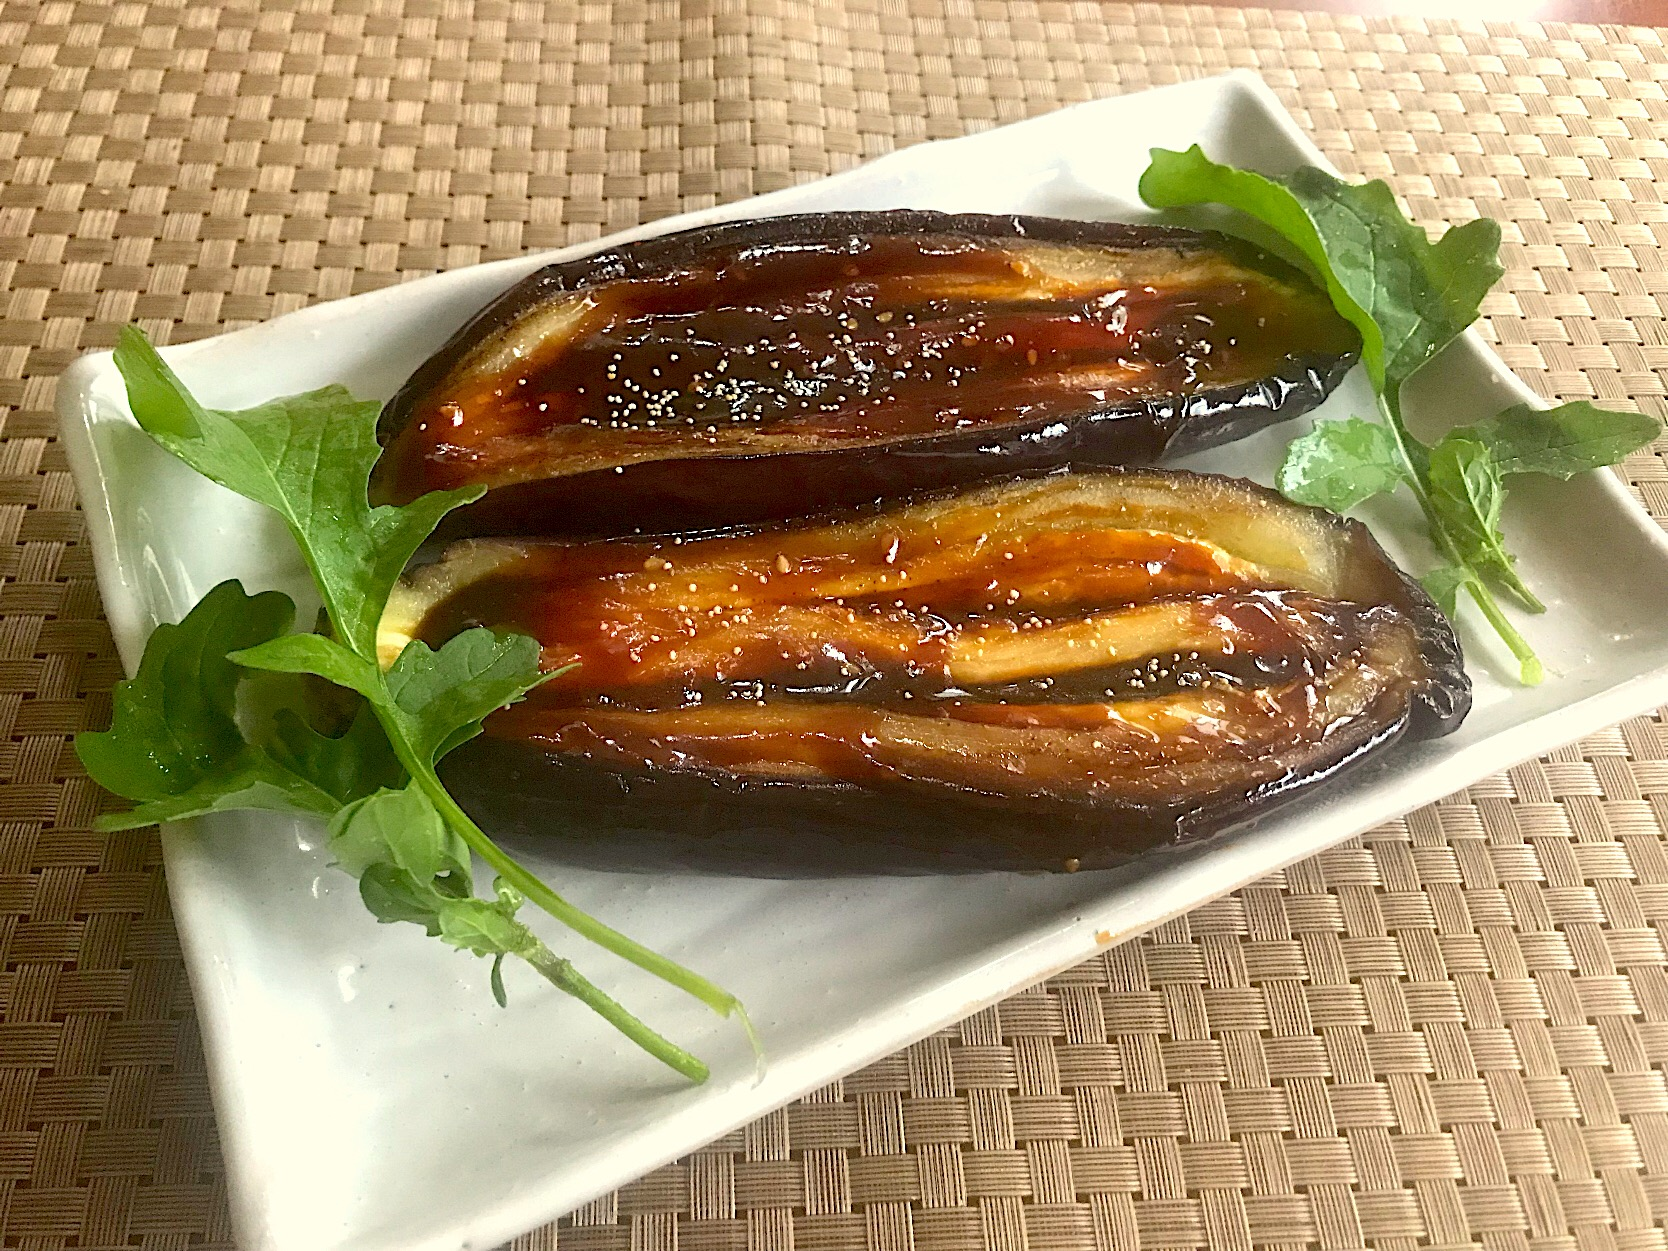 Grilled eggplant w/sweet miso paste🍆茄子田楽